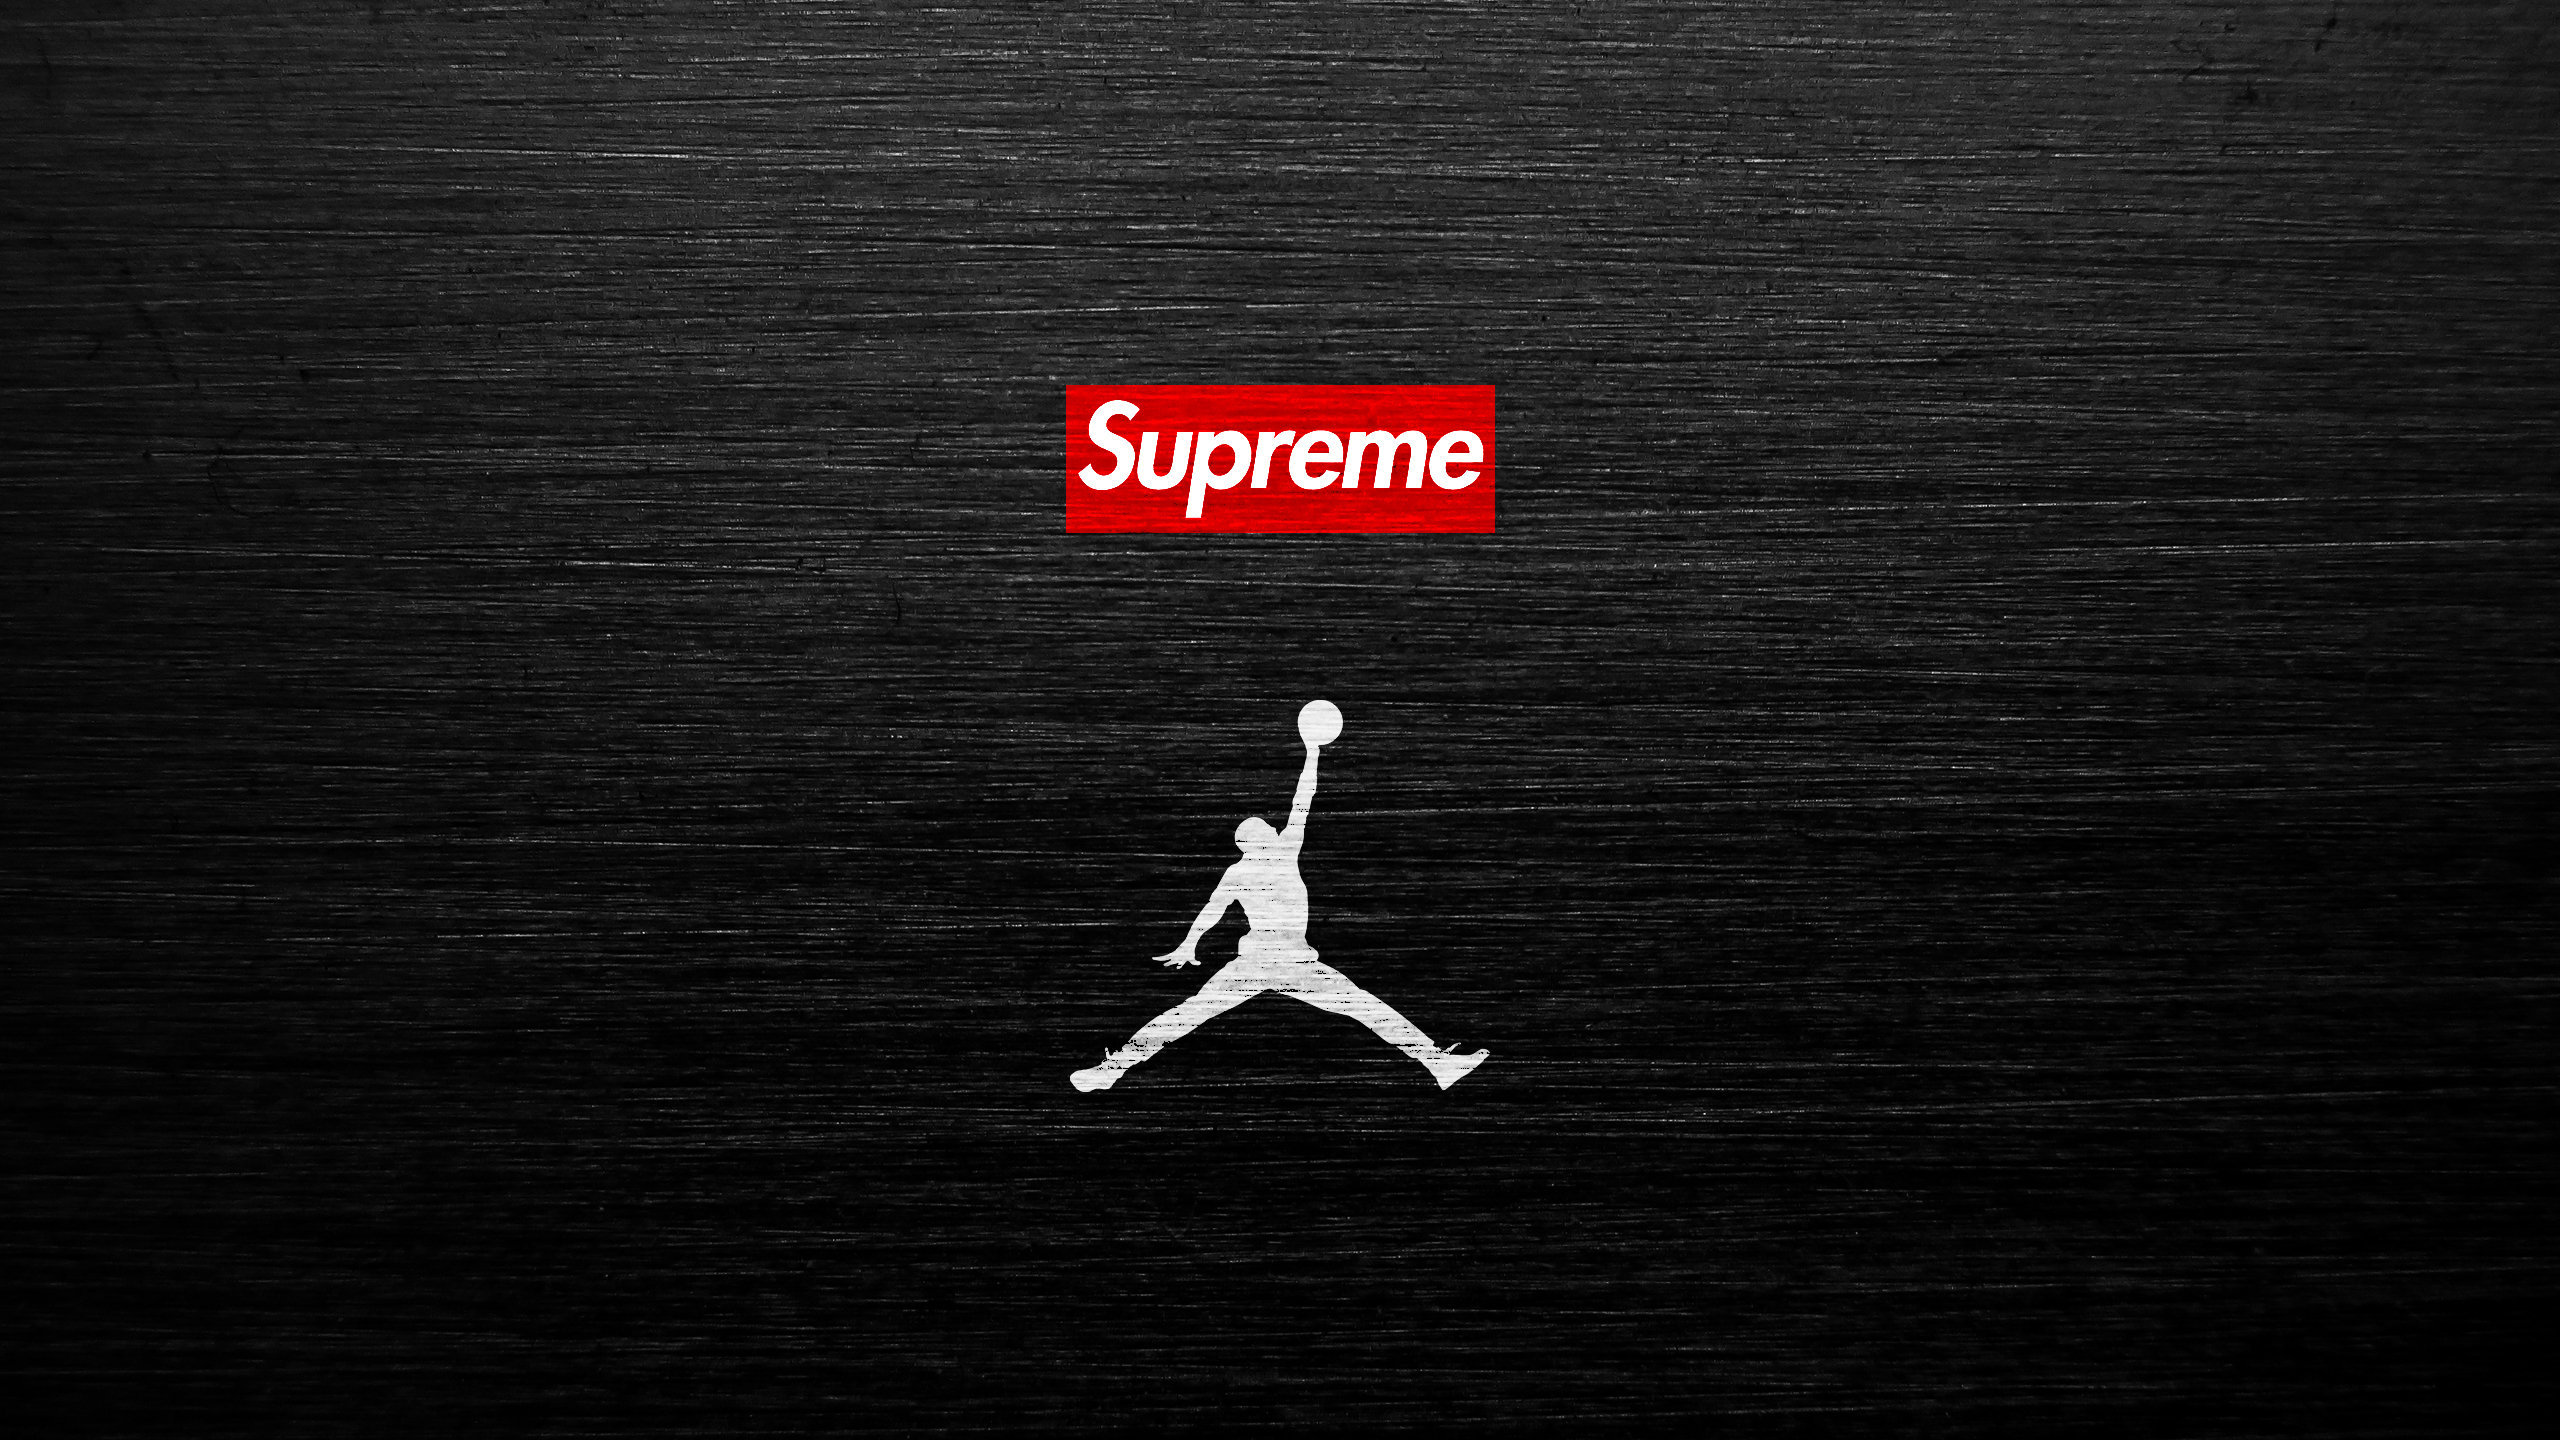 Air Jordan Supreme Wallpaper   AuthenticSupremecom 2560x1440